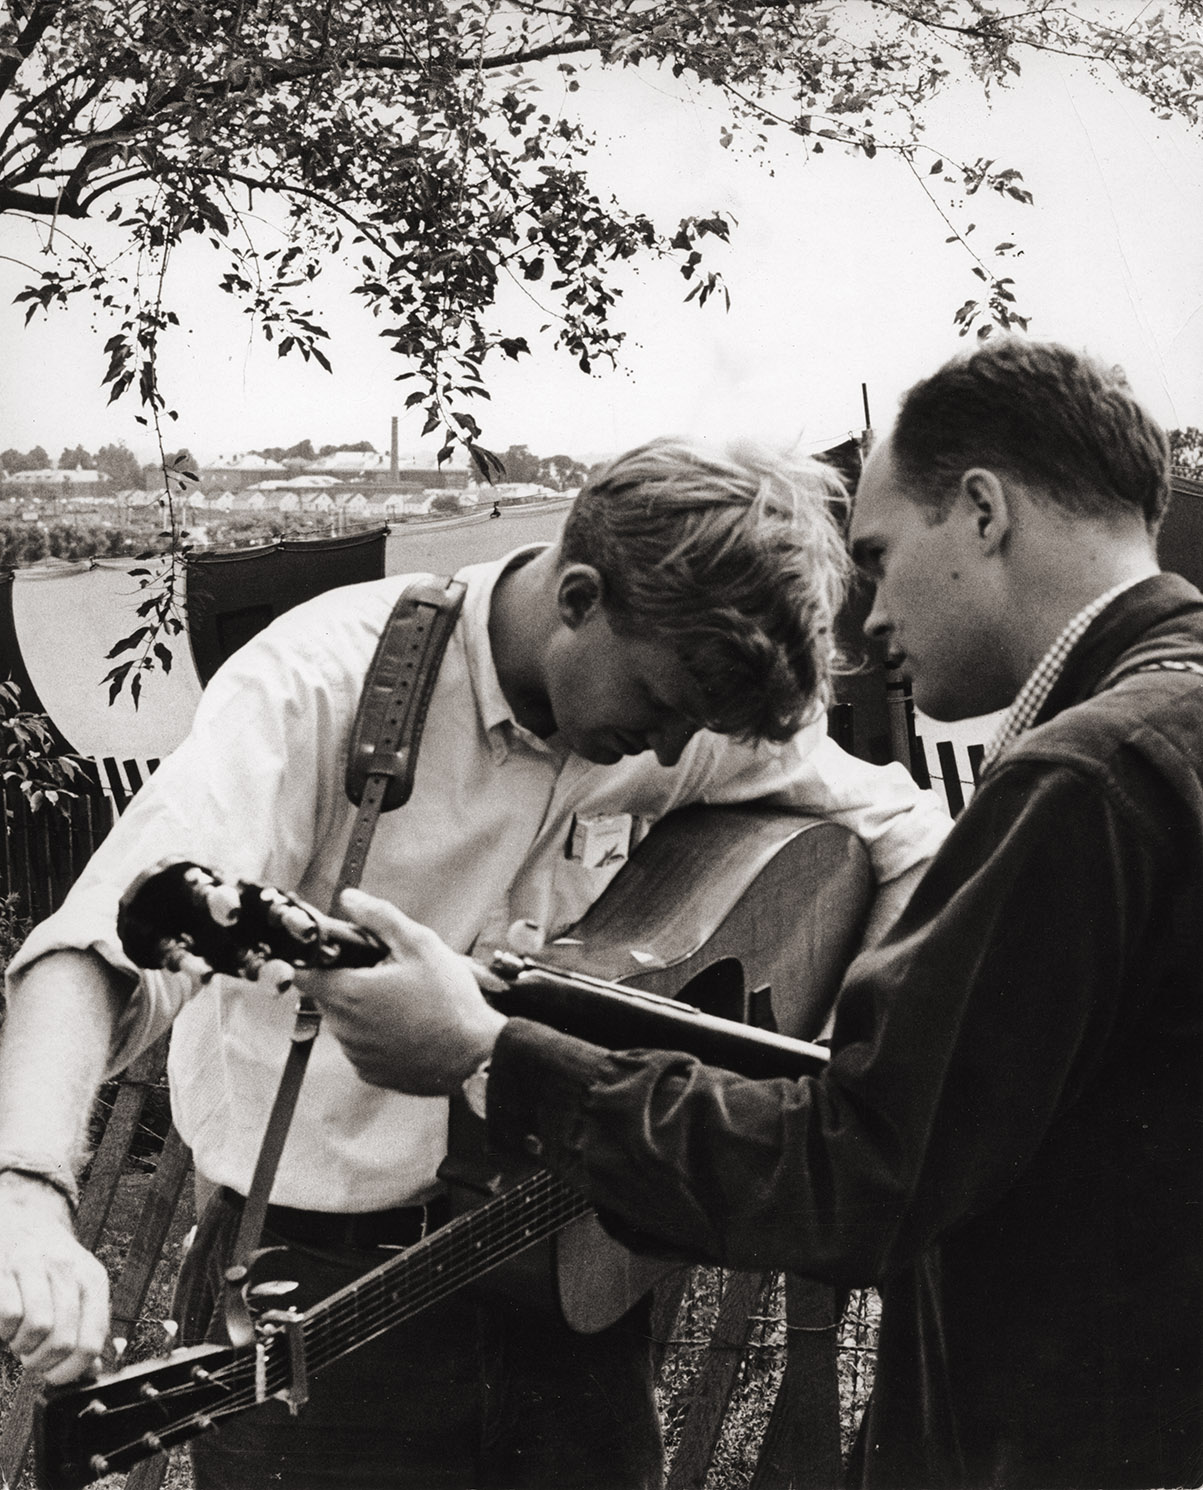 An image of: Jim Rooney, tuning his guitar, and Bill Keith at the Newport Folk Festival, 1965